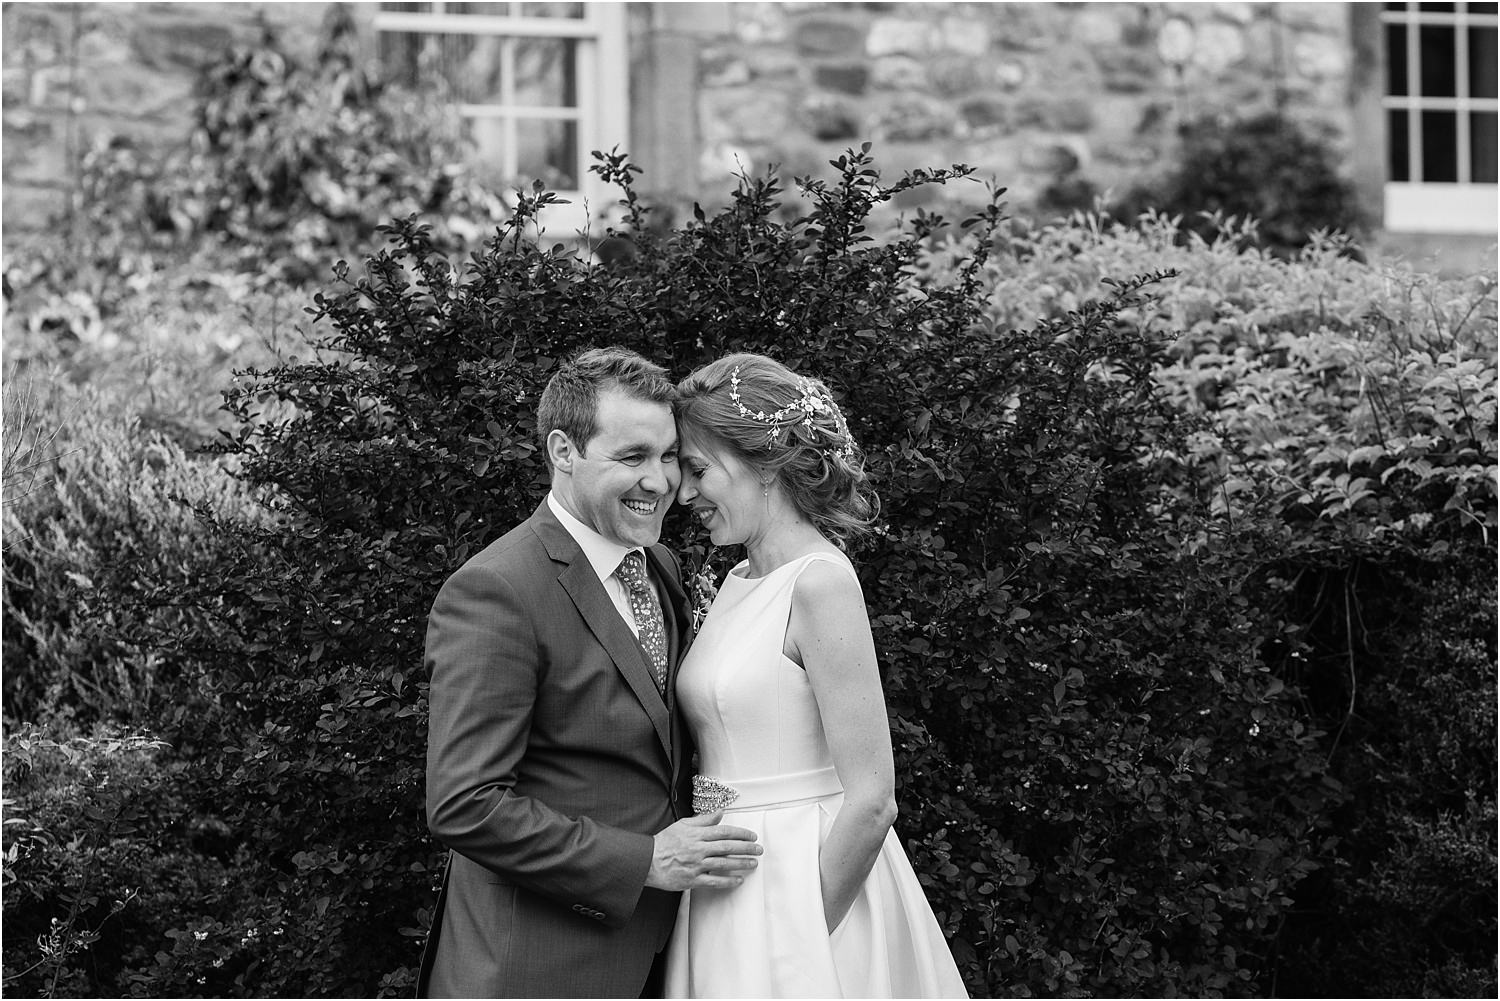 Bride and groom share an intimate moment after their wedding reception at the Inn at Whitewell in Lancashire